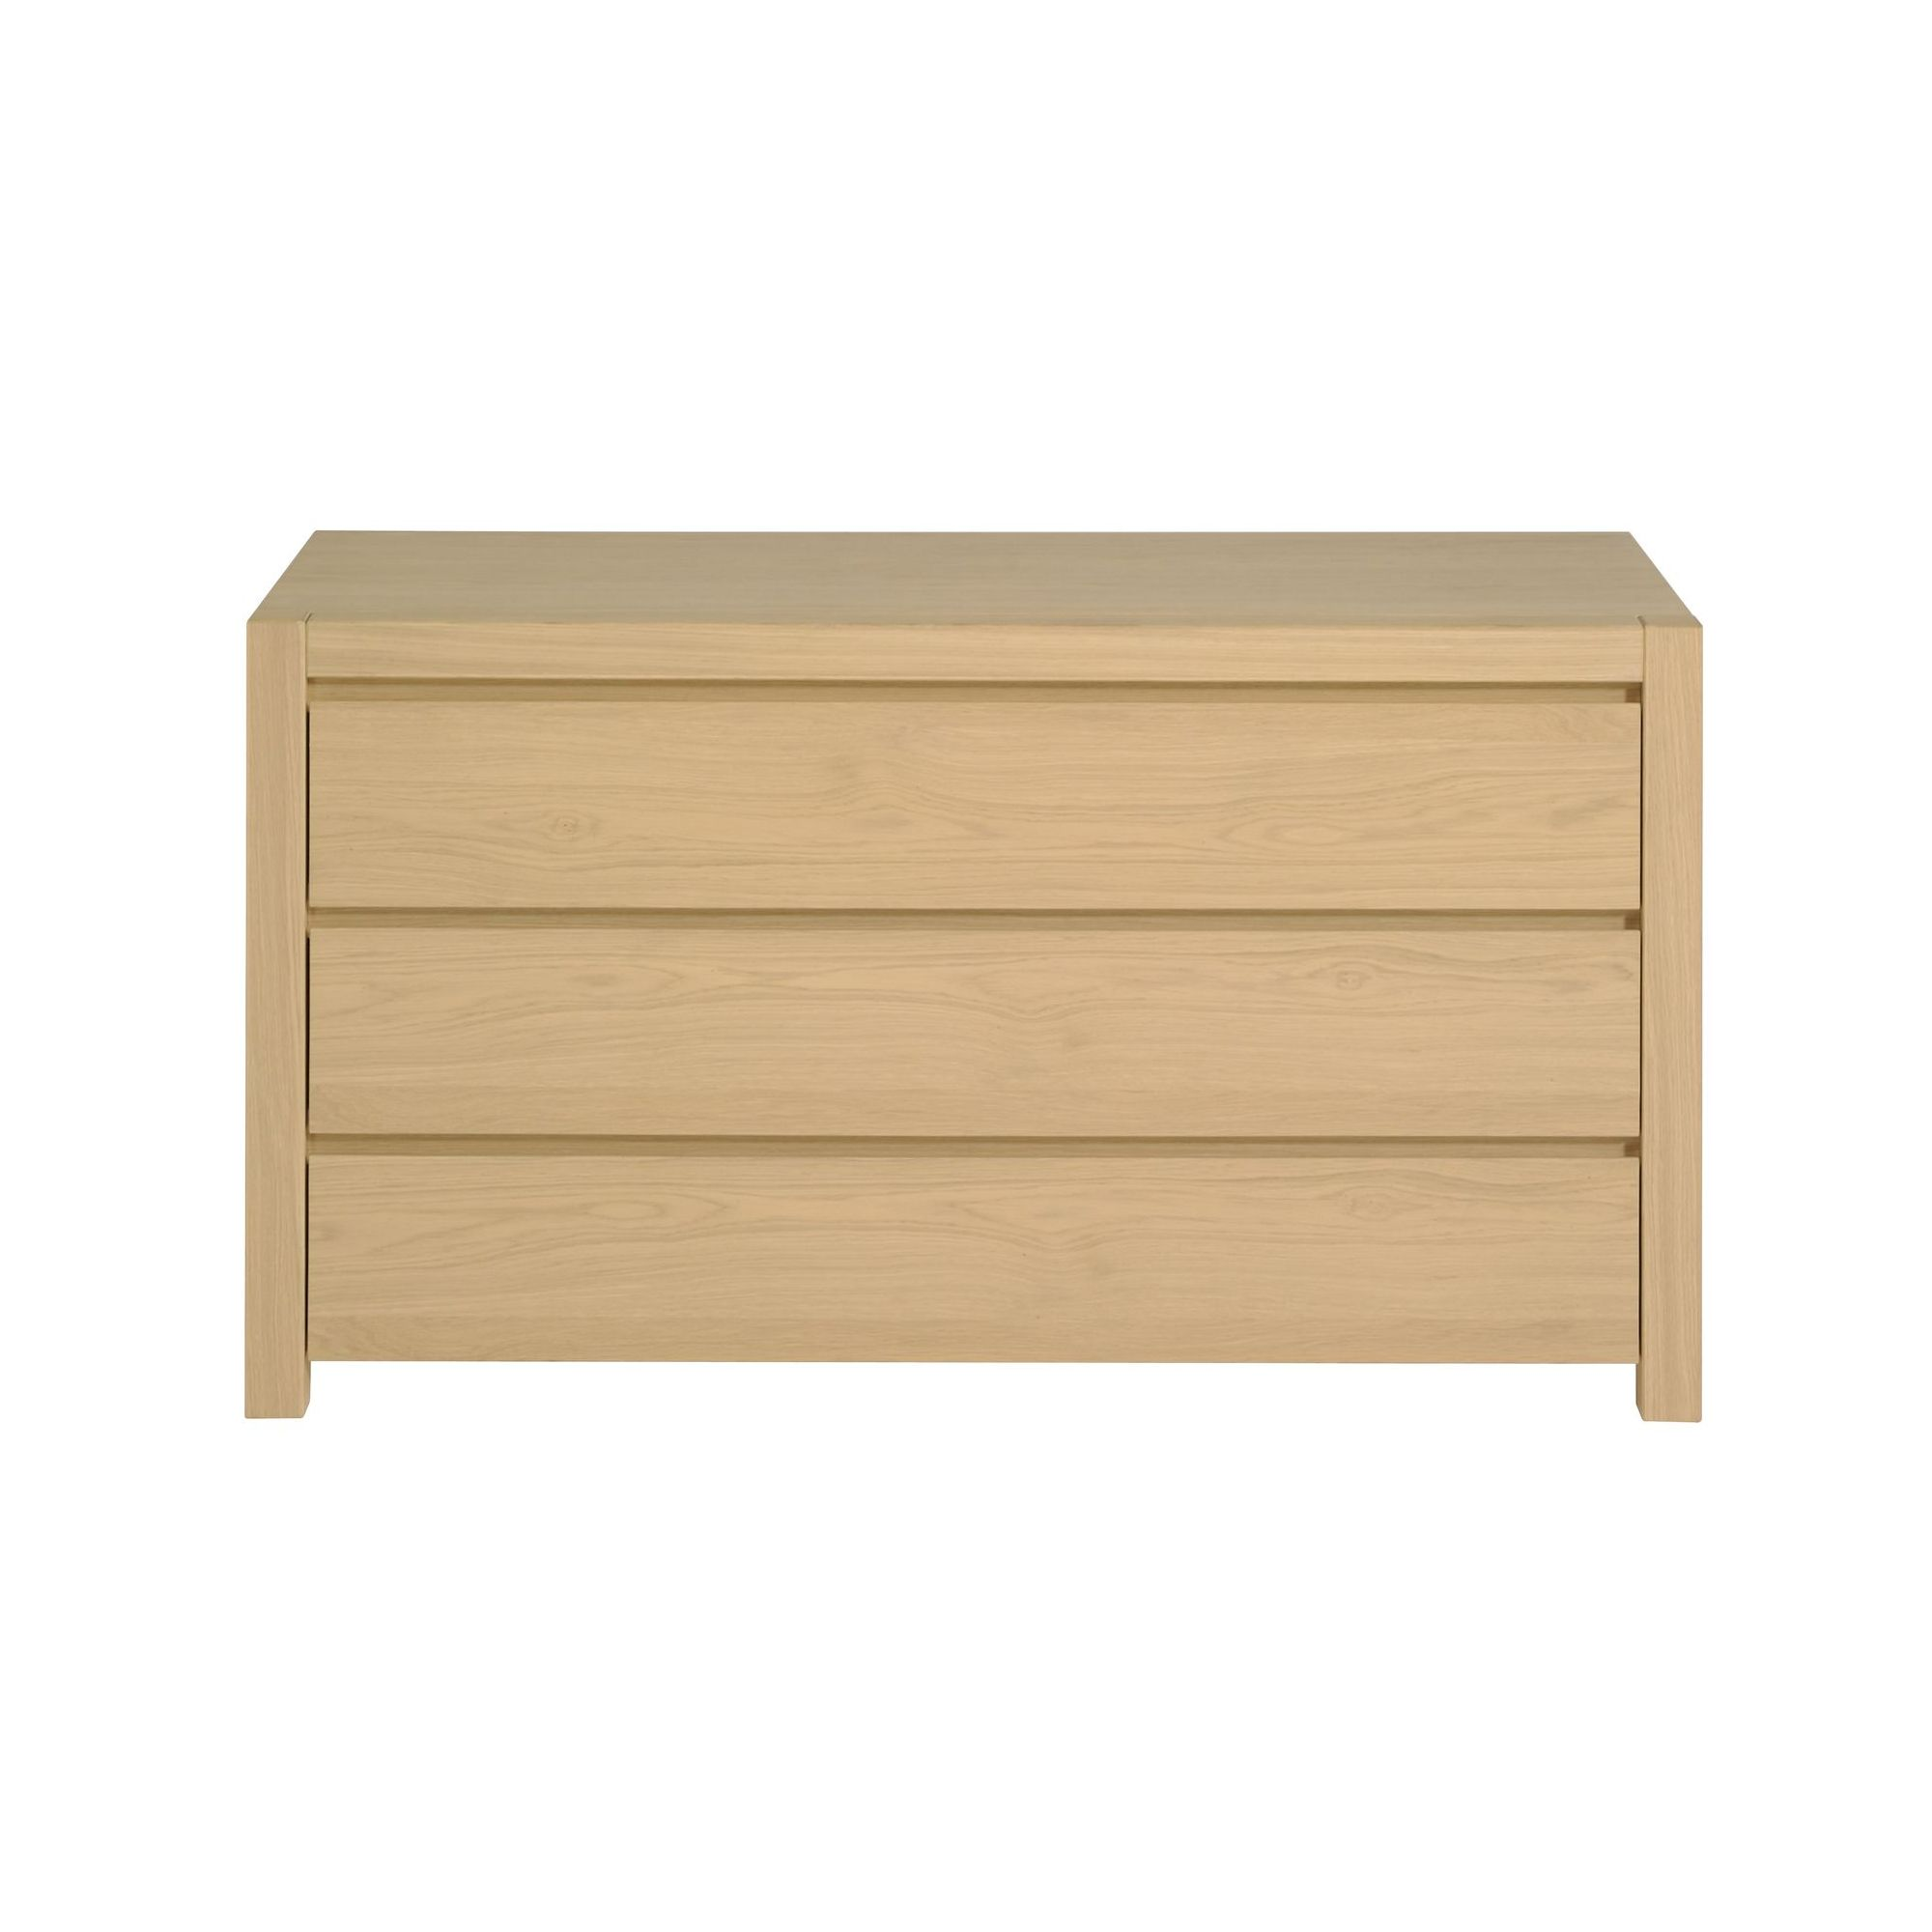 Parisot West 3 Drawer Chest at Tesco Direct